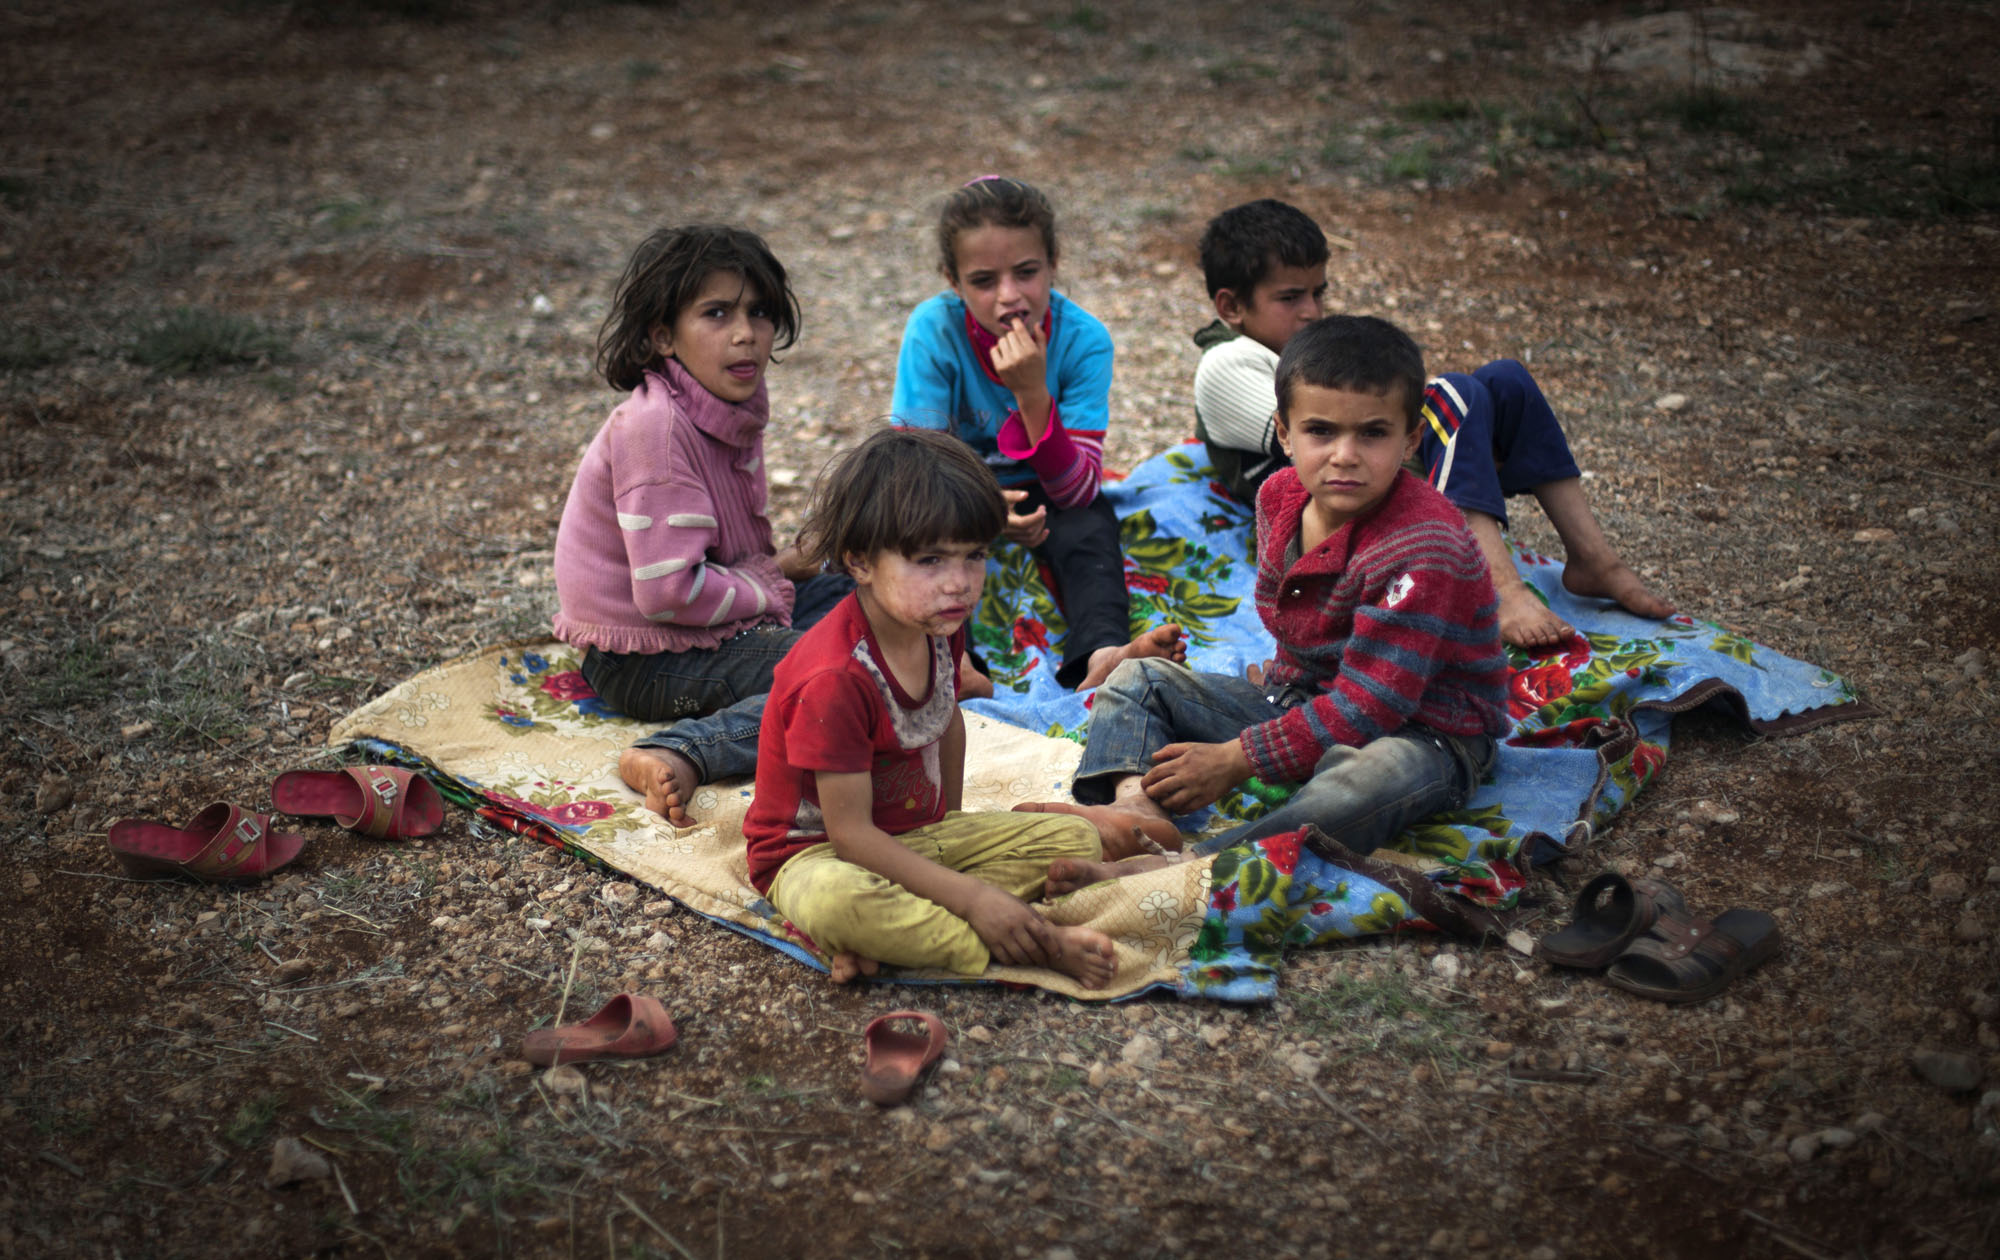 Syrian children who fled with their families from the violence in their village, sit on the ground at a displaced camp in the Syrian village of Atmeh, near the Turkish border with Syria, Thursday, Nov. 8, 2012.(AP Photo/Khalil Hamra)